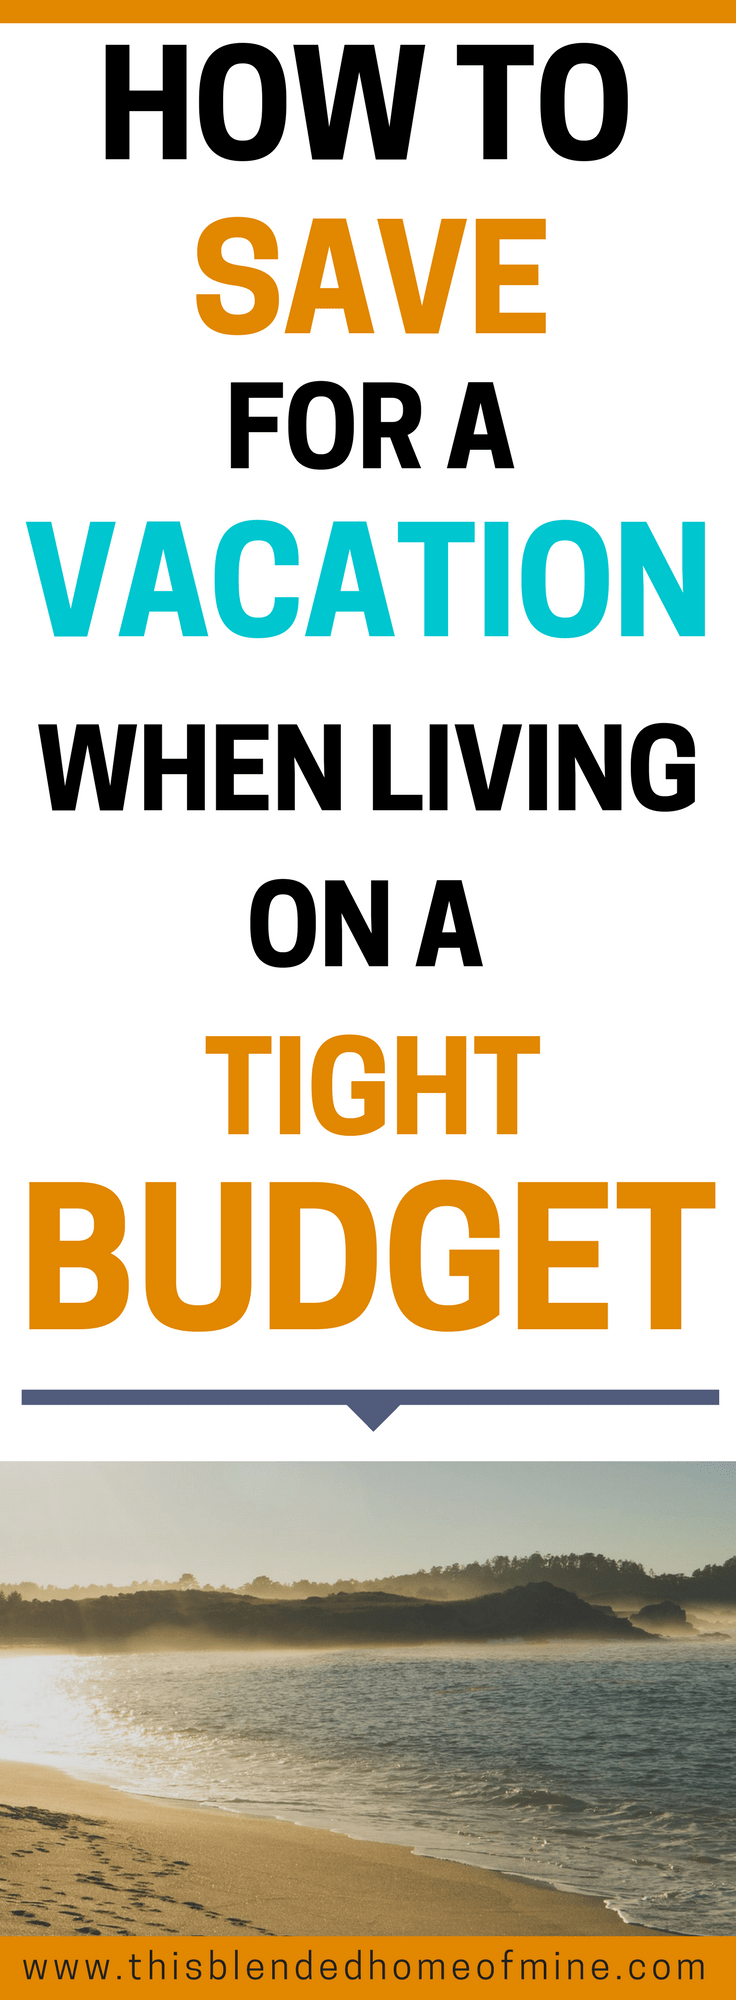 How To Save for A Holiday When Living on a Tight Budget - This Blended Home of Mine - Vacation, Budget, Travel, How to Budget, How to Save, Save for Travel, Save for a Vacation